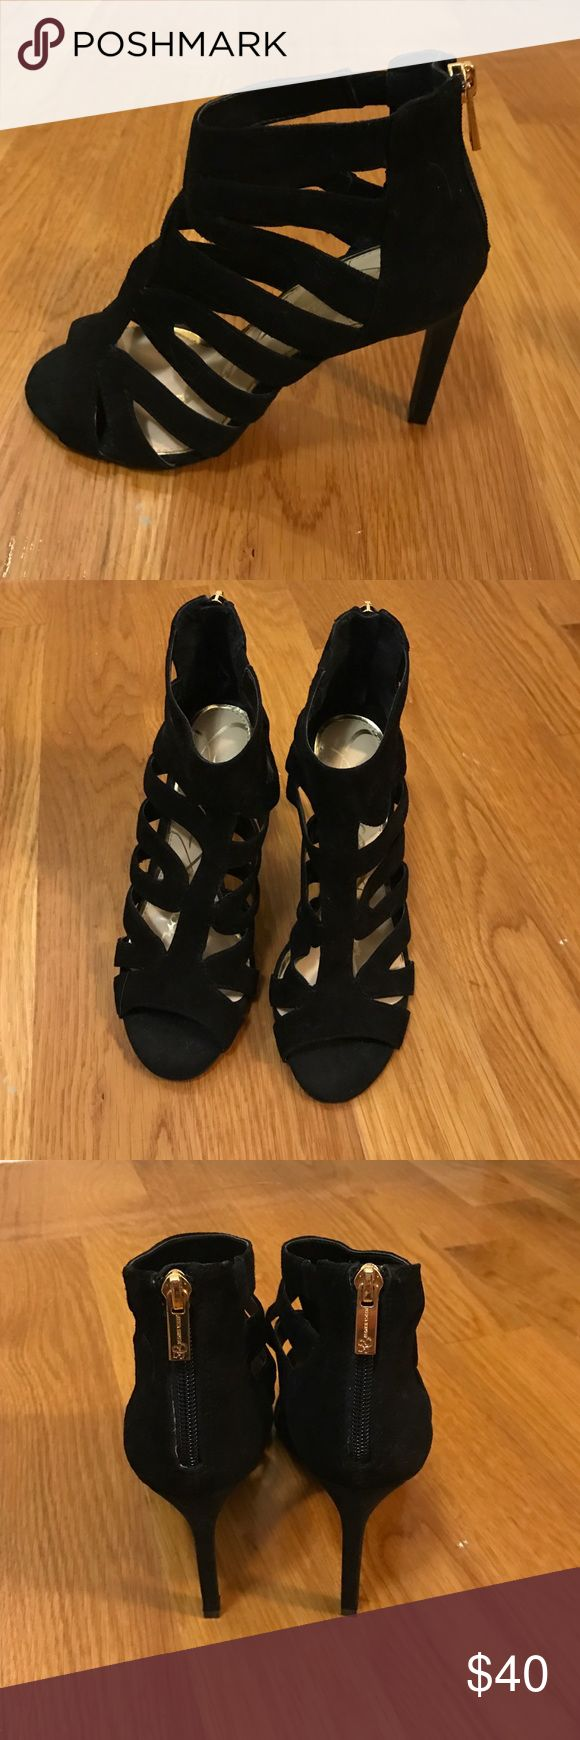 Jessica Simpson Careyy Sandals/Heels Only worn once. Very comfortable and true to size. Great for going out or to a formal event Jessica Simpson Shoes Heels